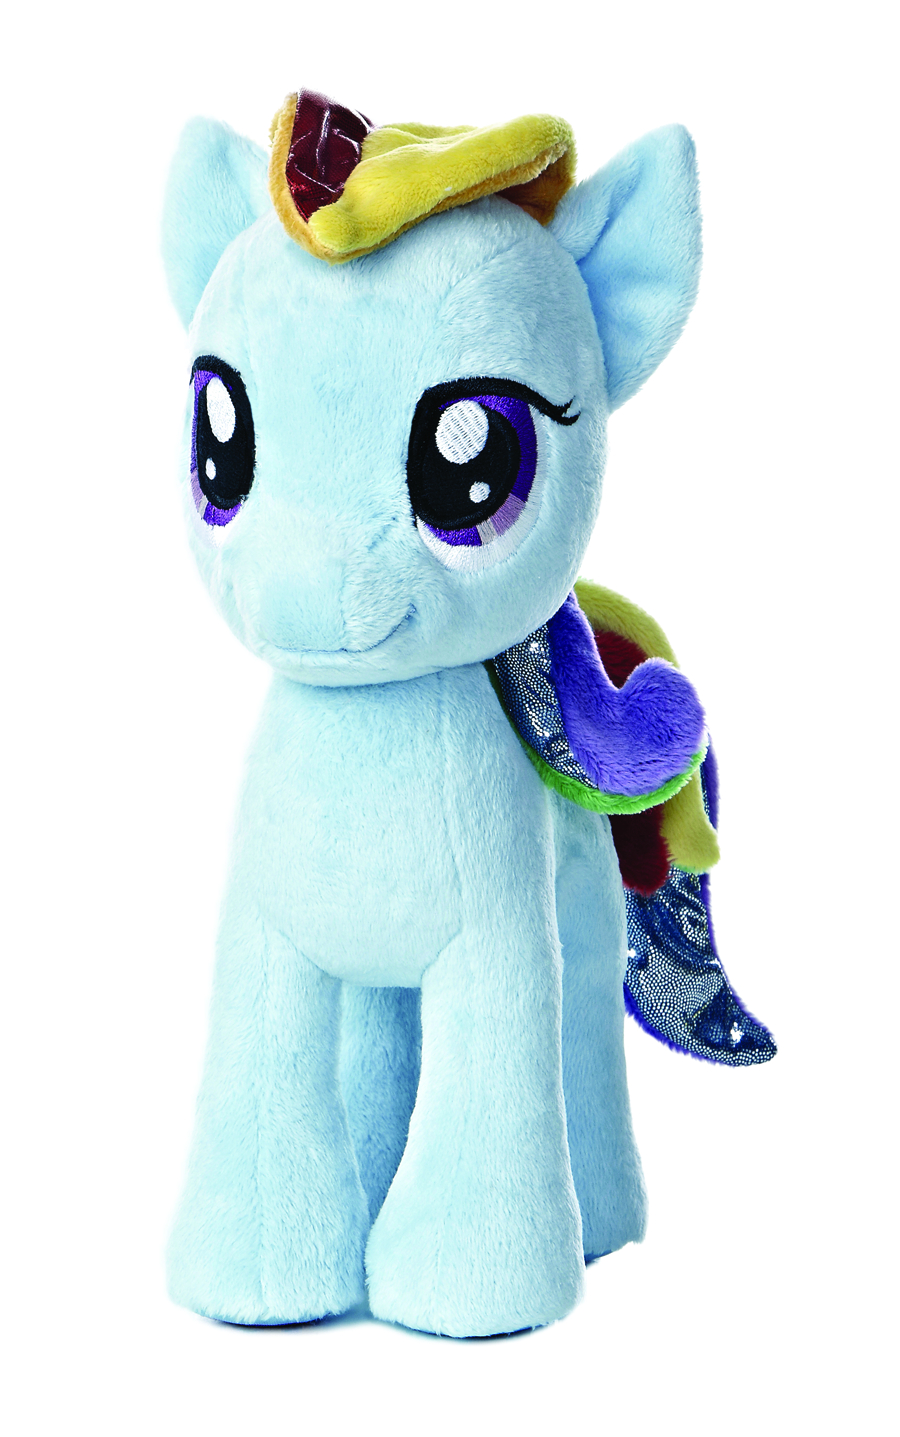 AURORA MLP RAINBOW DASH 10IN PLUSH